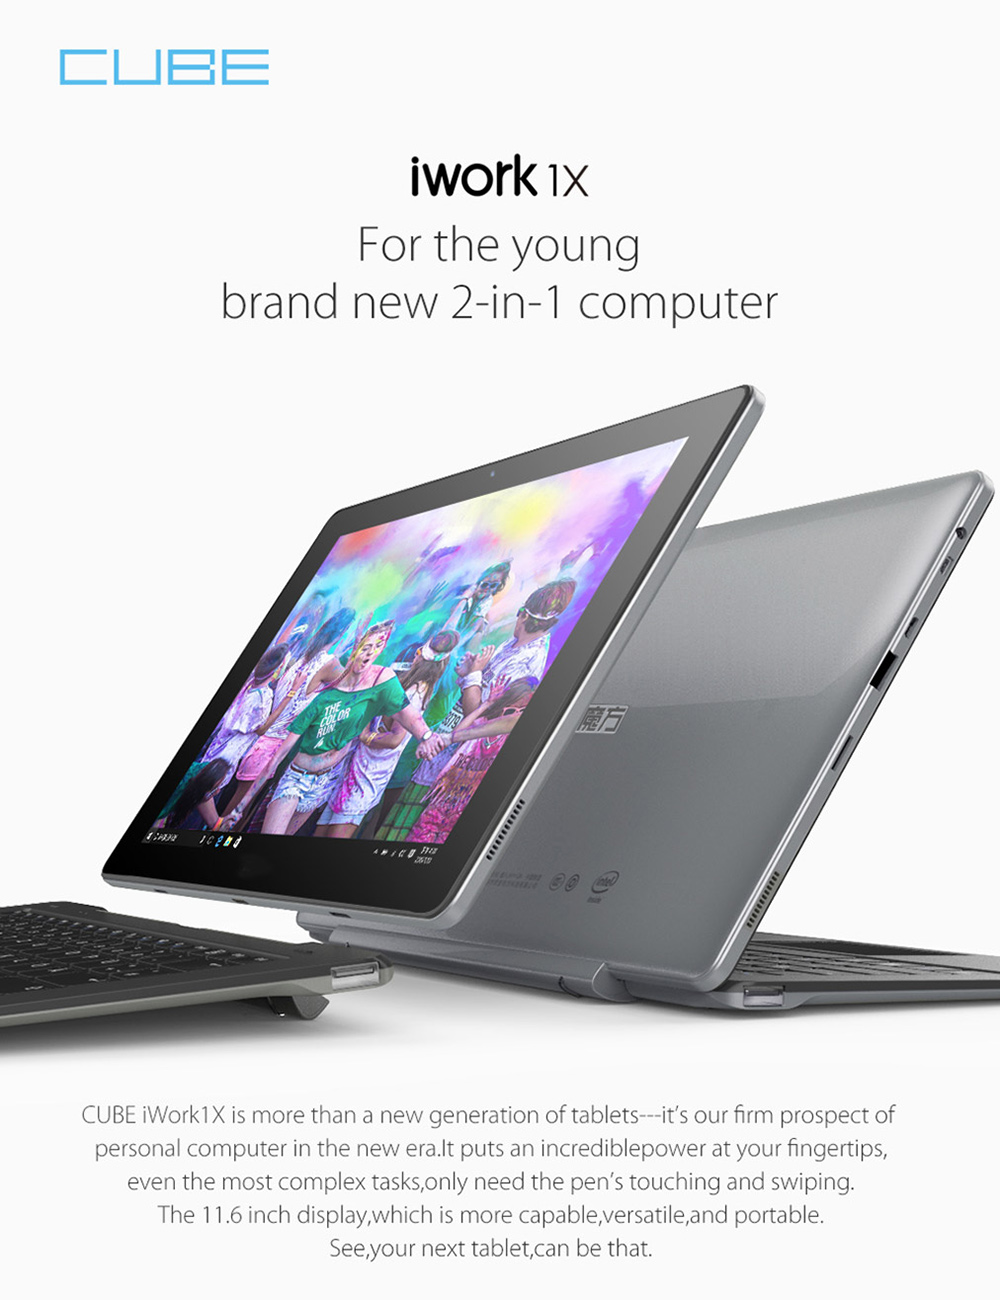 Cube iwork1x 2 en 1 Tablet PC 11.6 pouces de Windows 10 IPS d'écran Intel Atom Z8350 X5-64bit Quad Core 1.44GHz 4GB RAM 64GB ROM Caméra Bluetooth 4.0